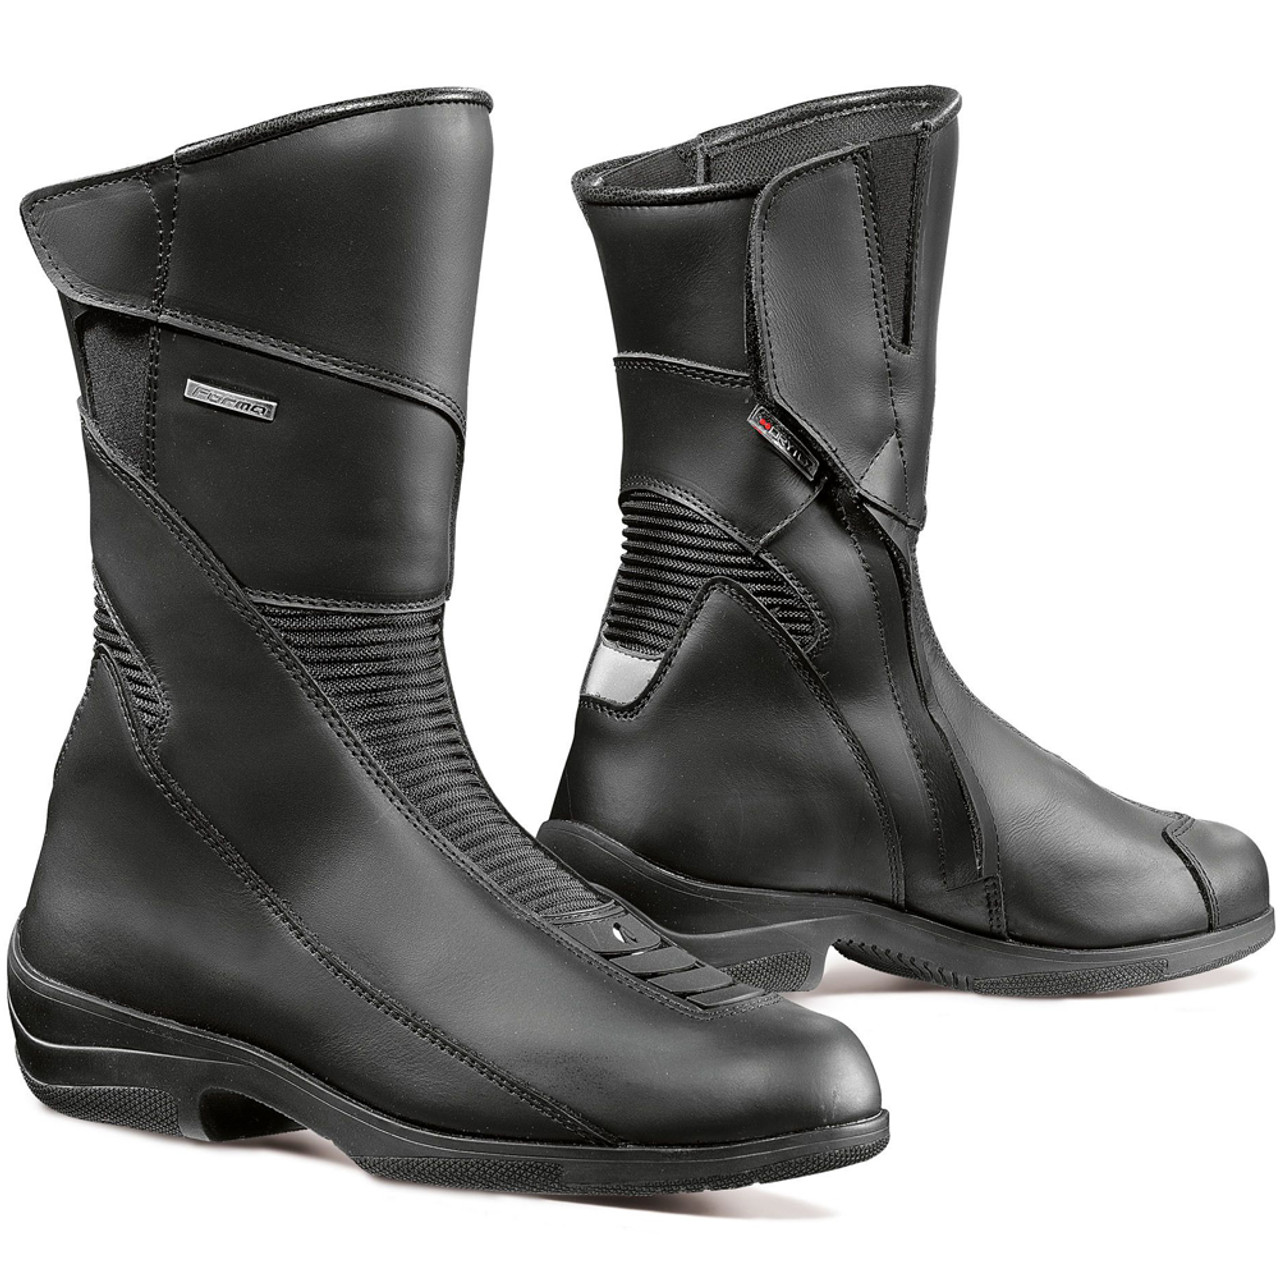 Forma Women's Simo Touring Motorcycle Boots Black